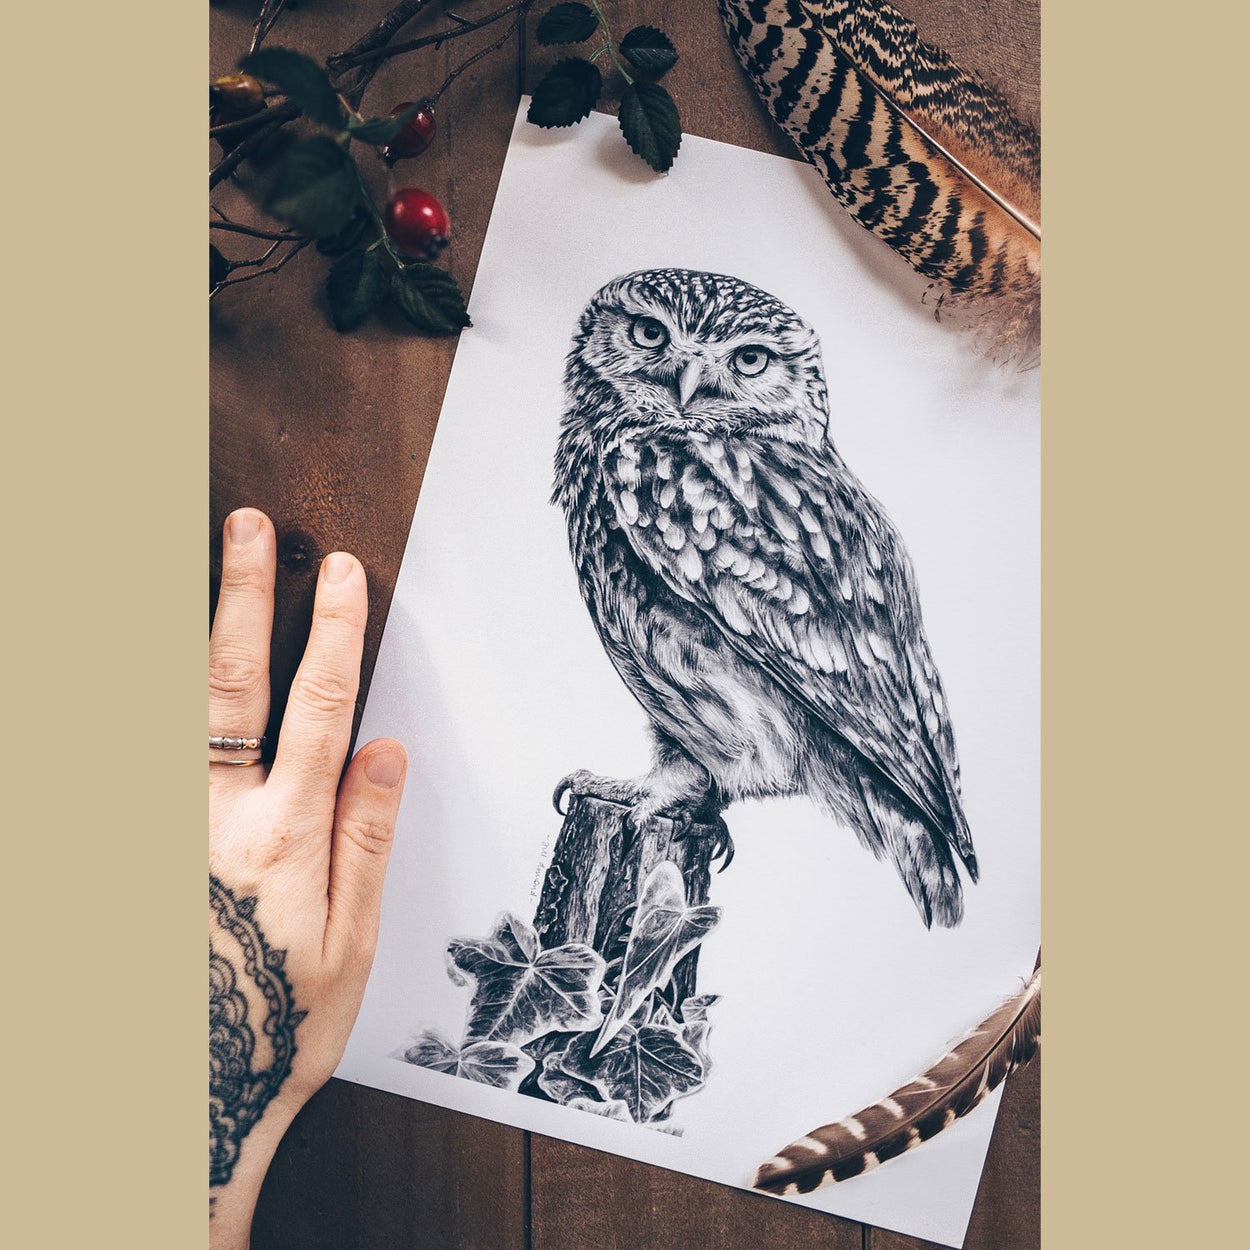 Little Owl Art Print on Table 2 - The Thriving Wild